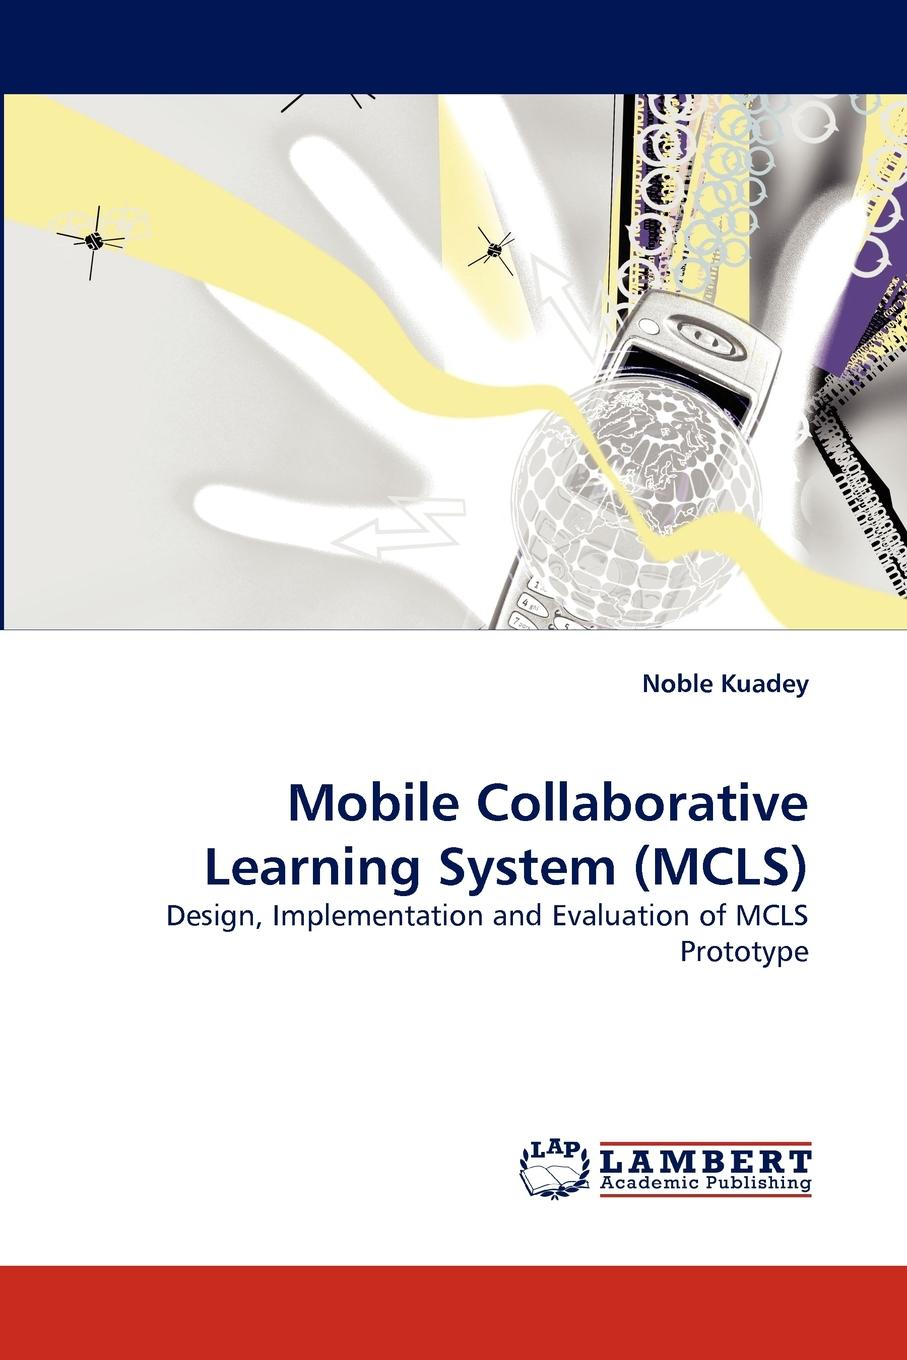 Noble Kuadey Mobile Collaborative Learning System (MCLS)